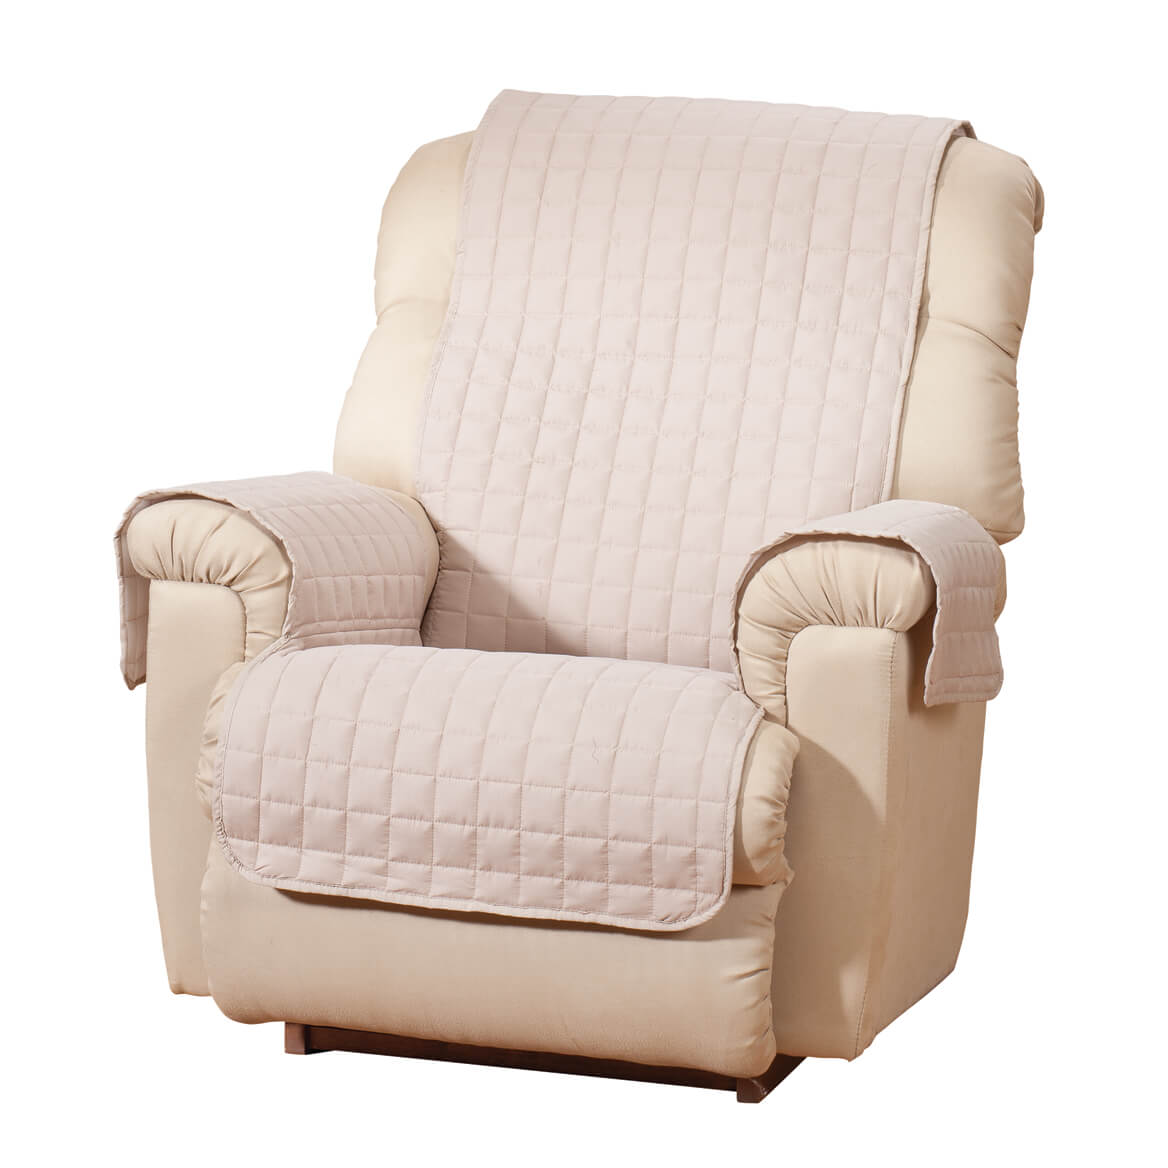 Microfiber Recliner Protector by OakRidge™ Comforts  sc 1 st  Miles Kimball & Microfiber Recliner Protector - Chair Protector - Miles Kimball islam-shia.org